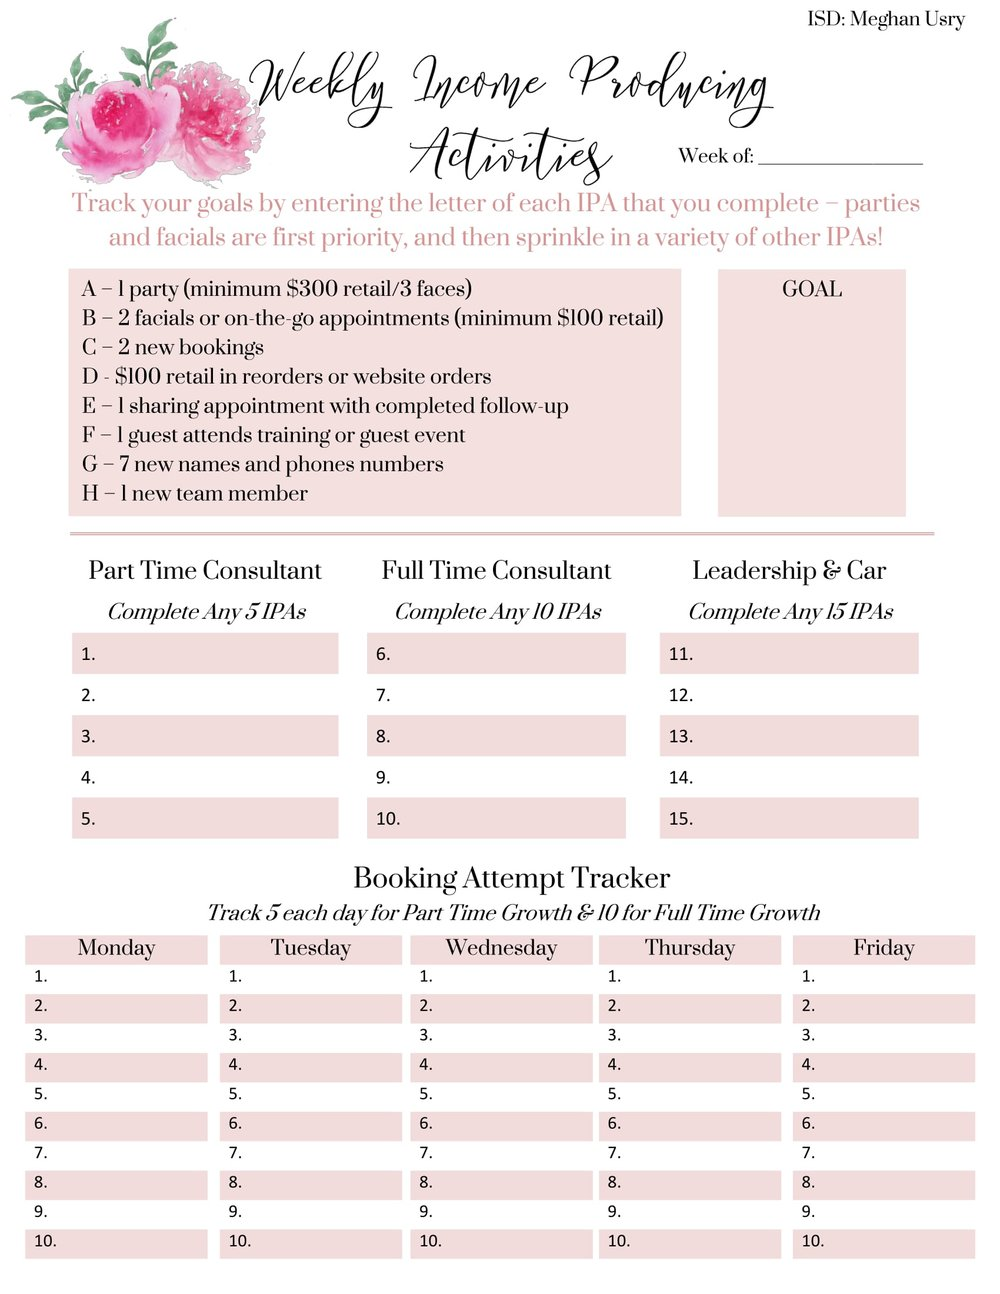 Weekly IPA Sheet - Use to track your income producing activities to make your the most of your time concentrating on your business in a fun and organized way!